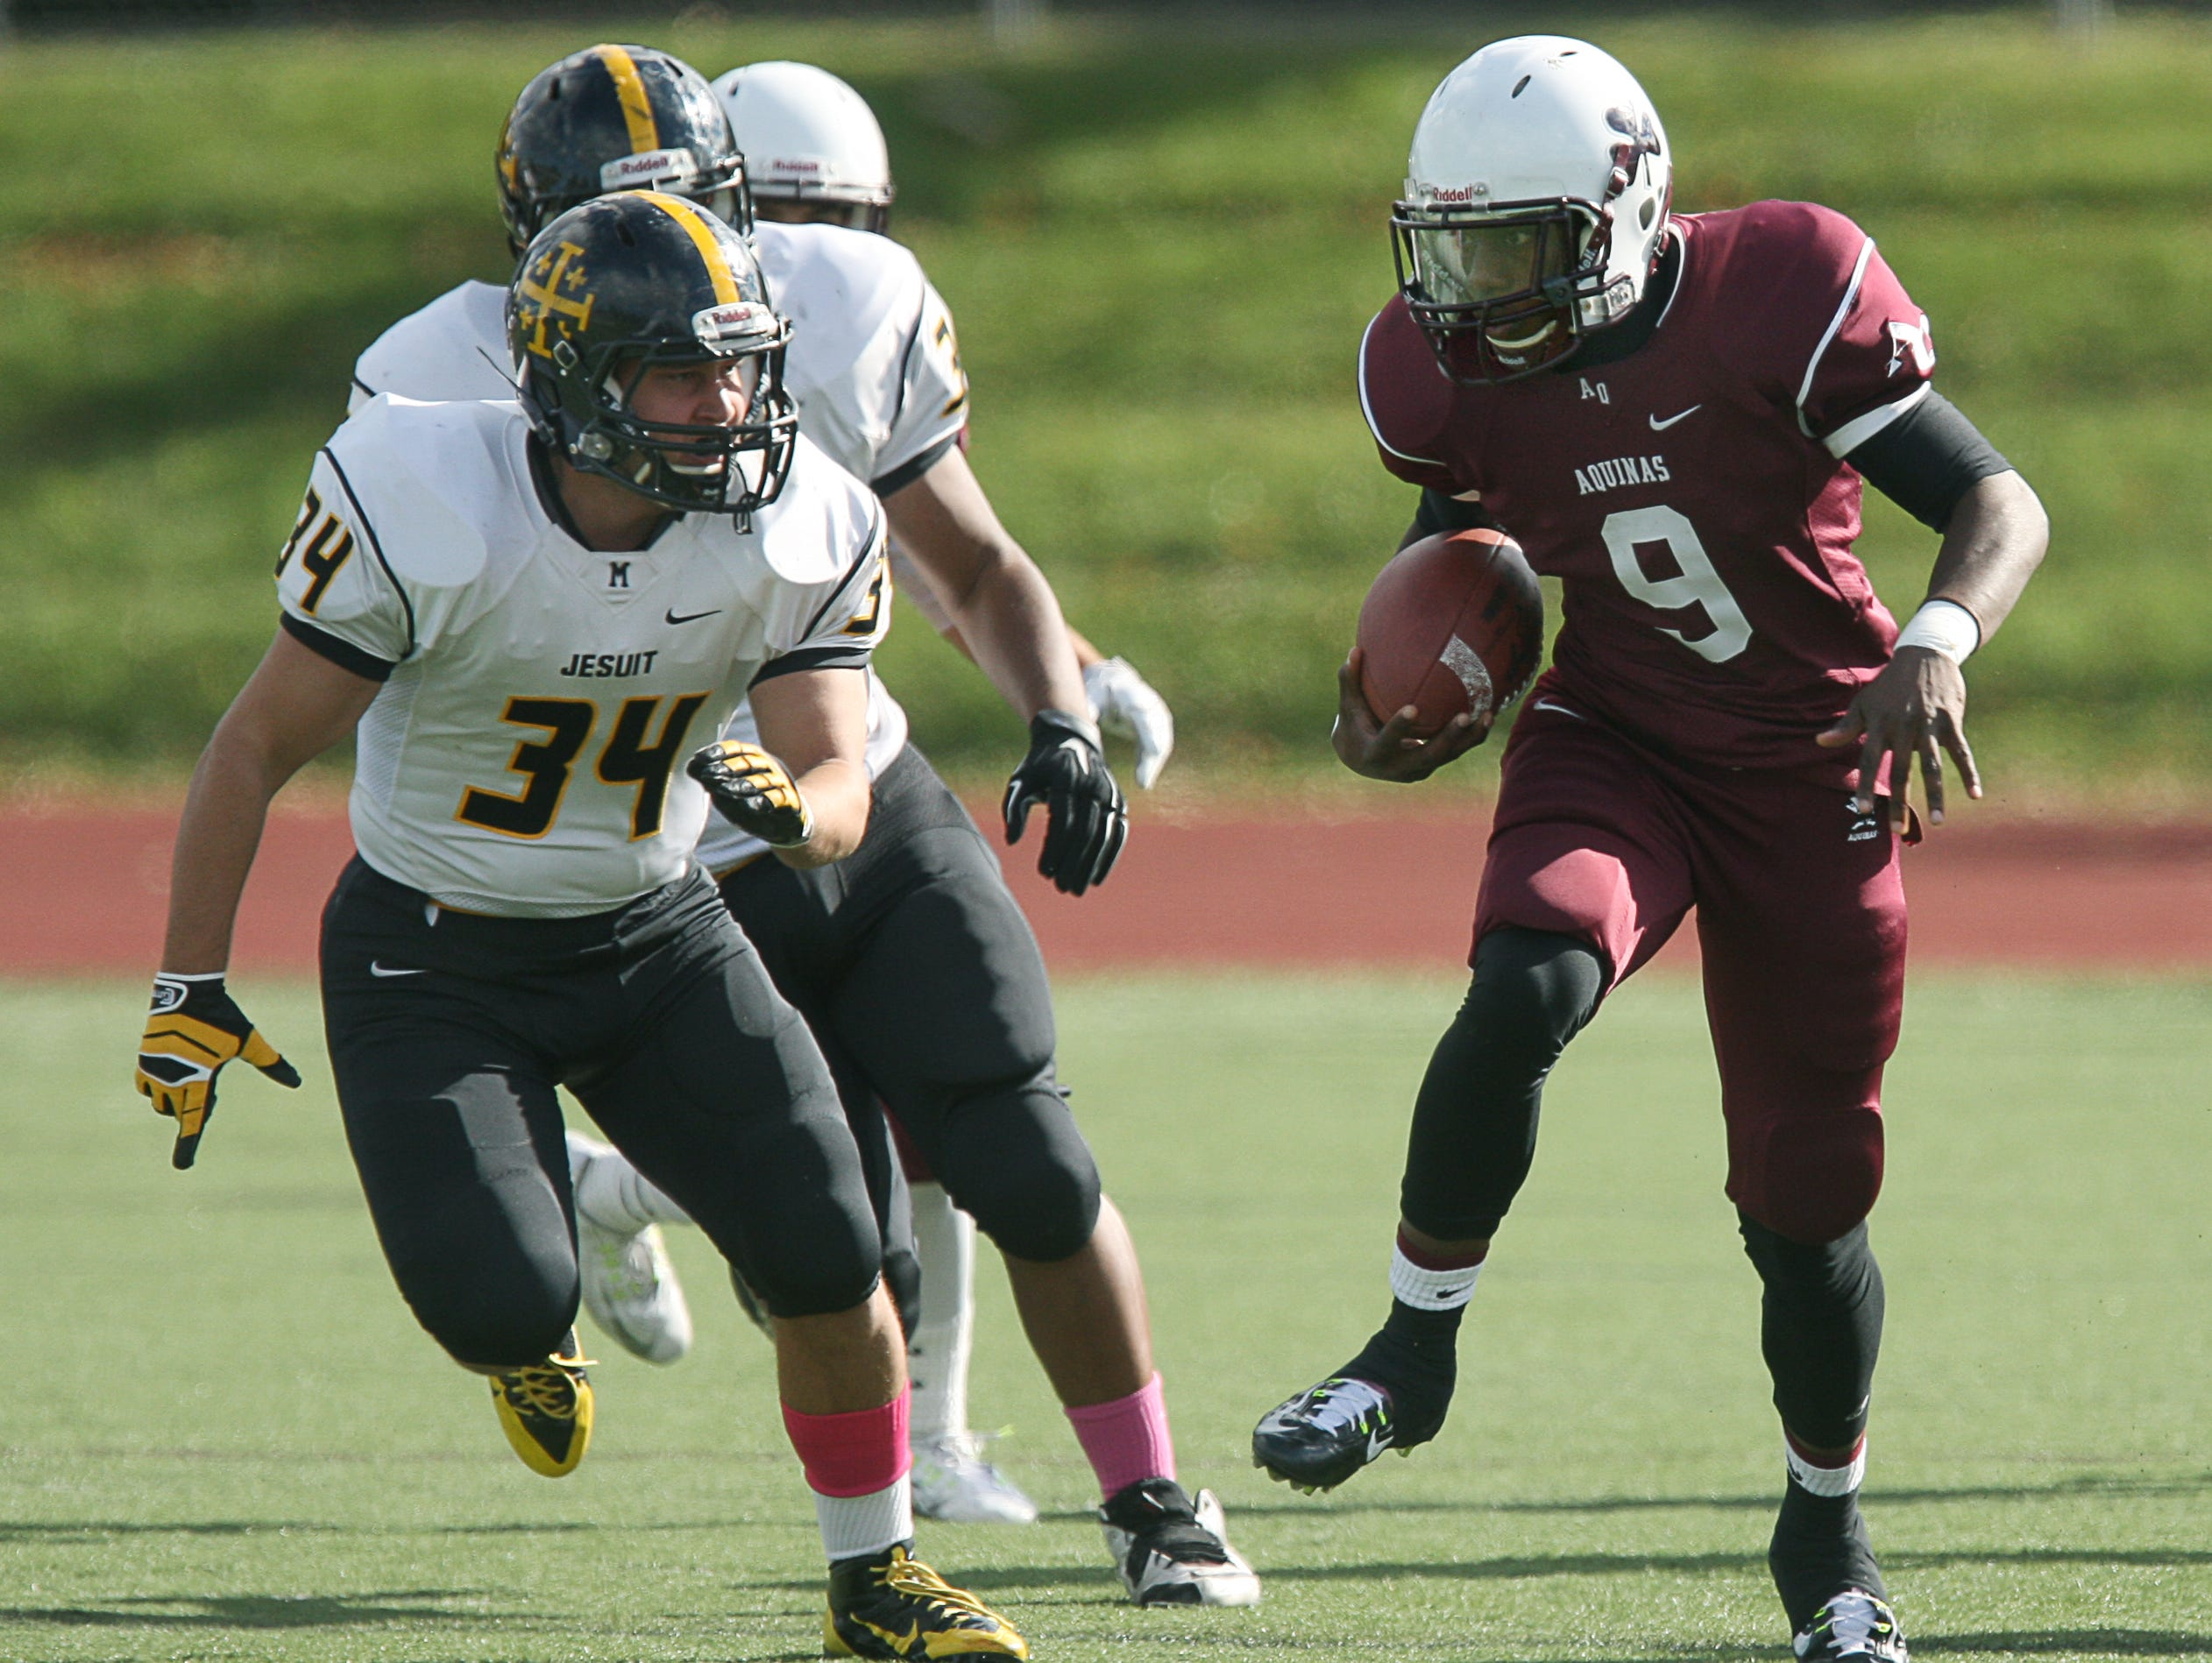 Aquinas rising senior Earnest Edwards plays at cornerback and receiver for the Little Irish.